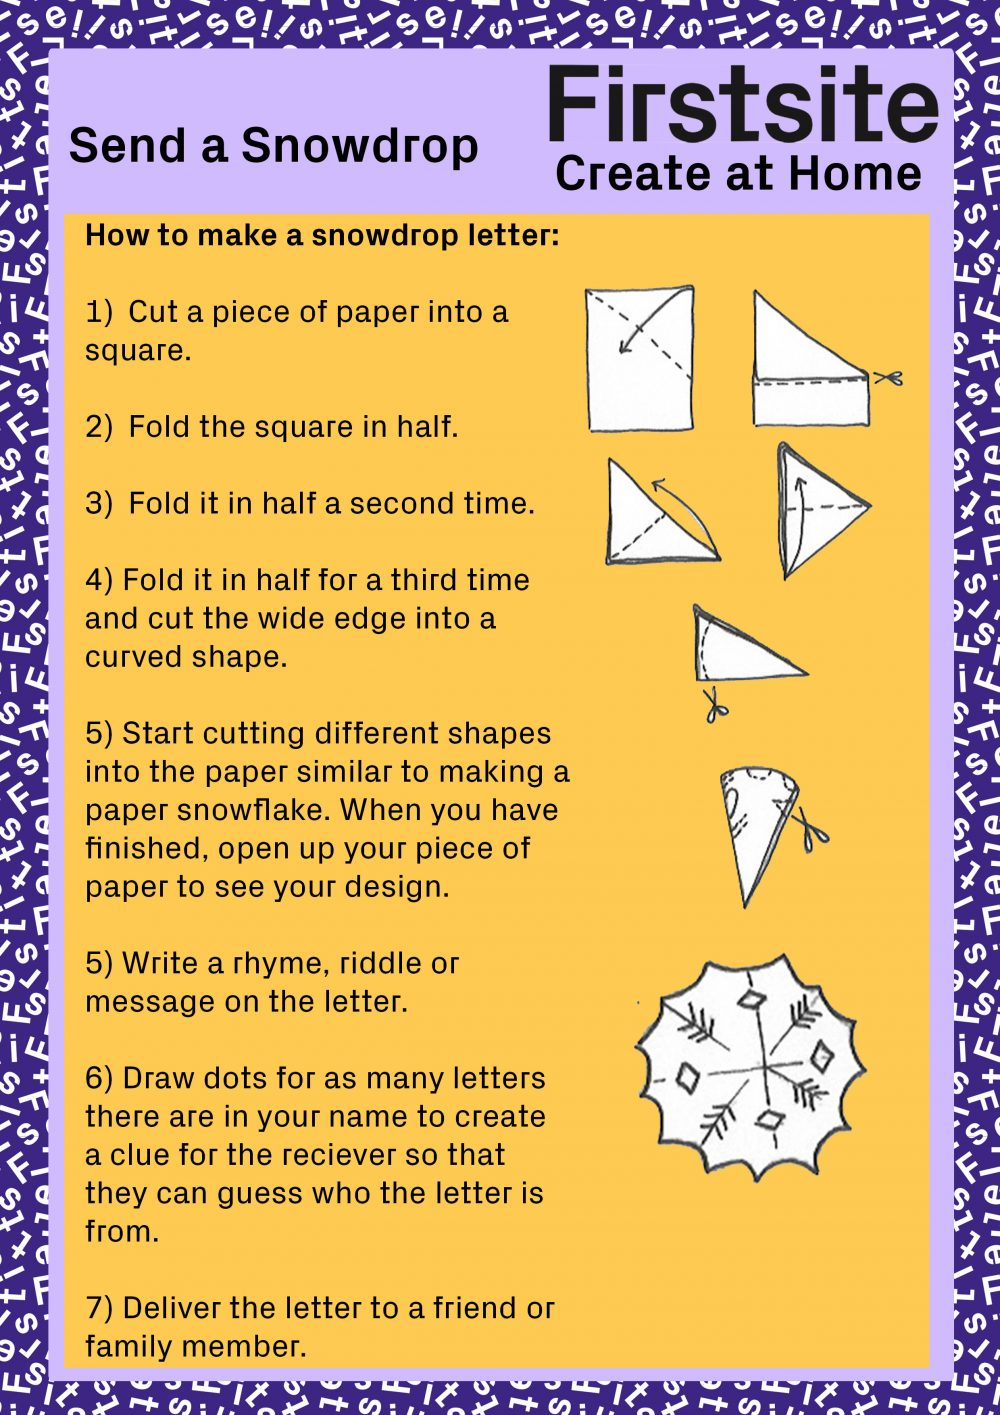 instructions for how to make a snowdrop letter page 1 of 2